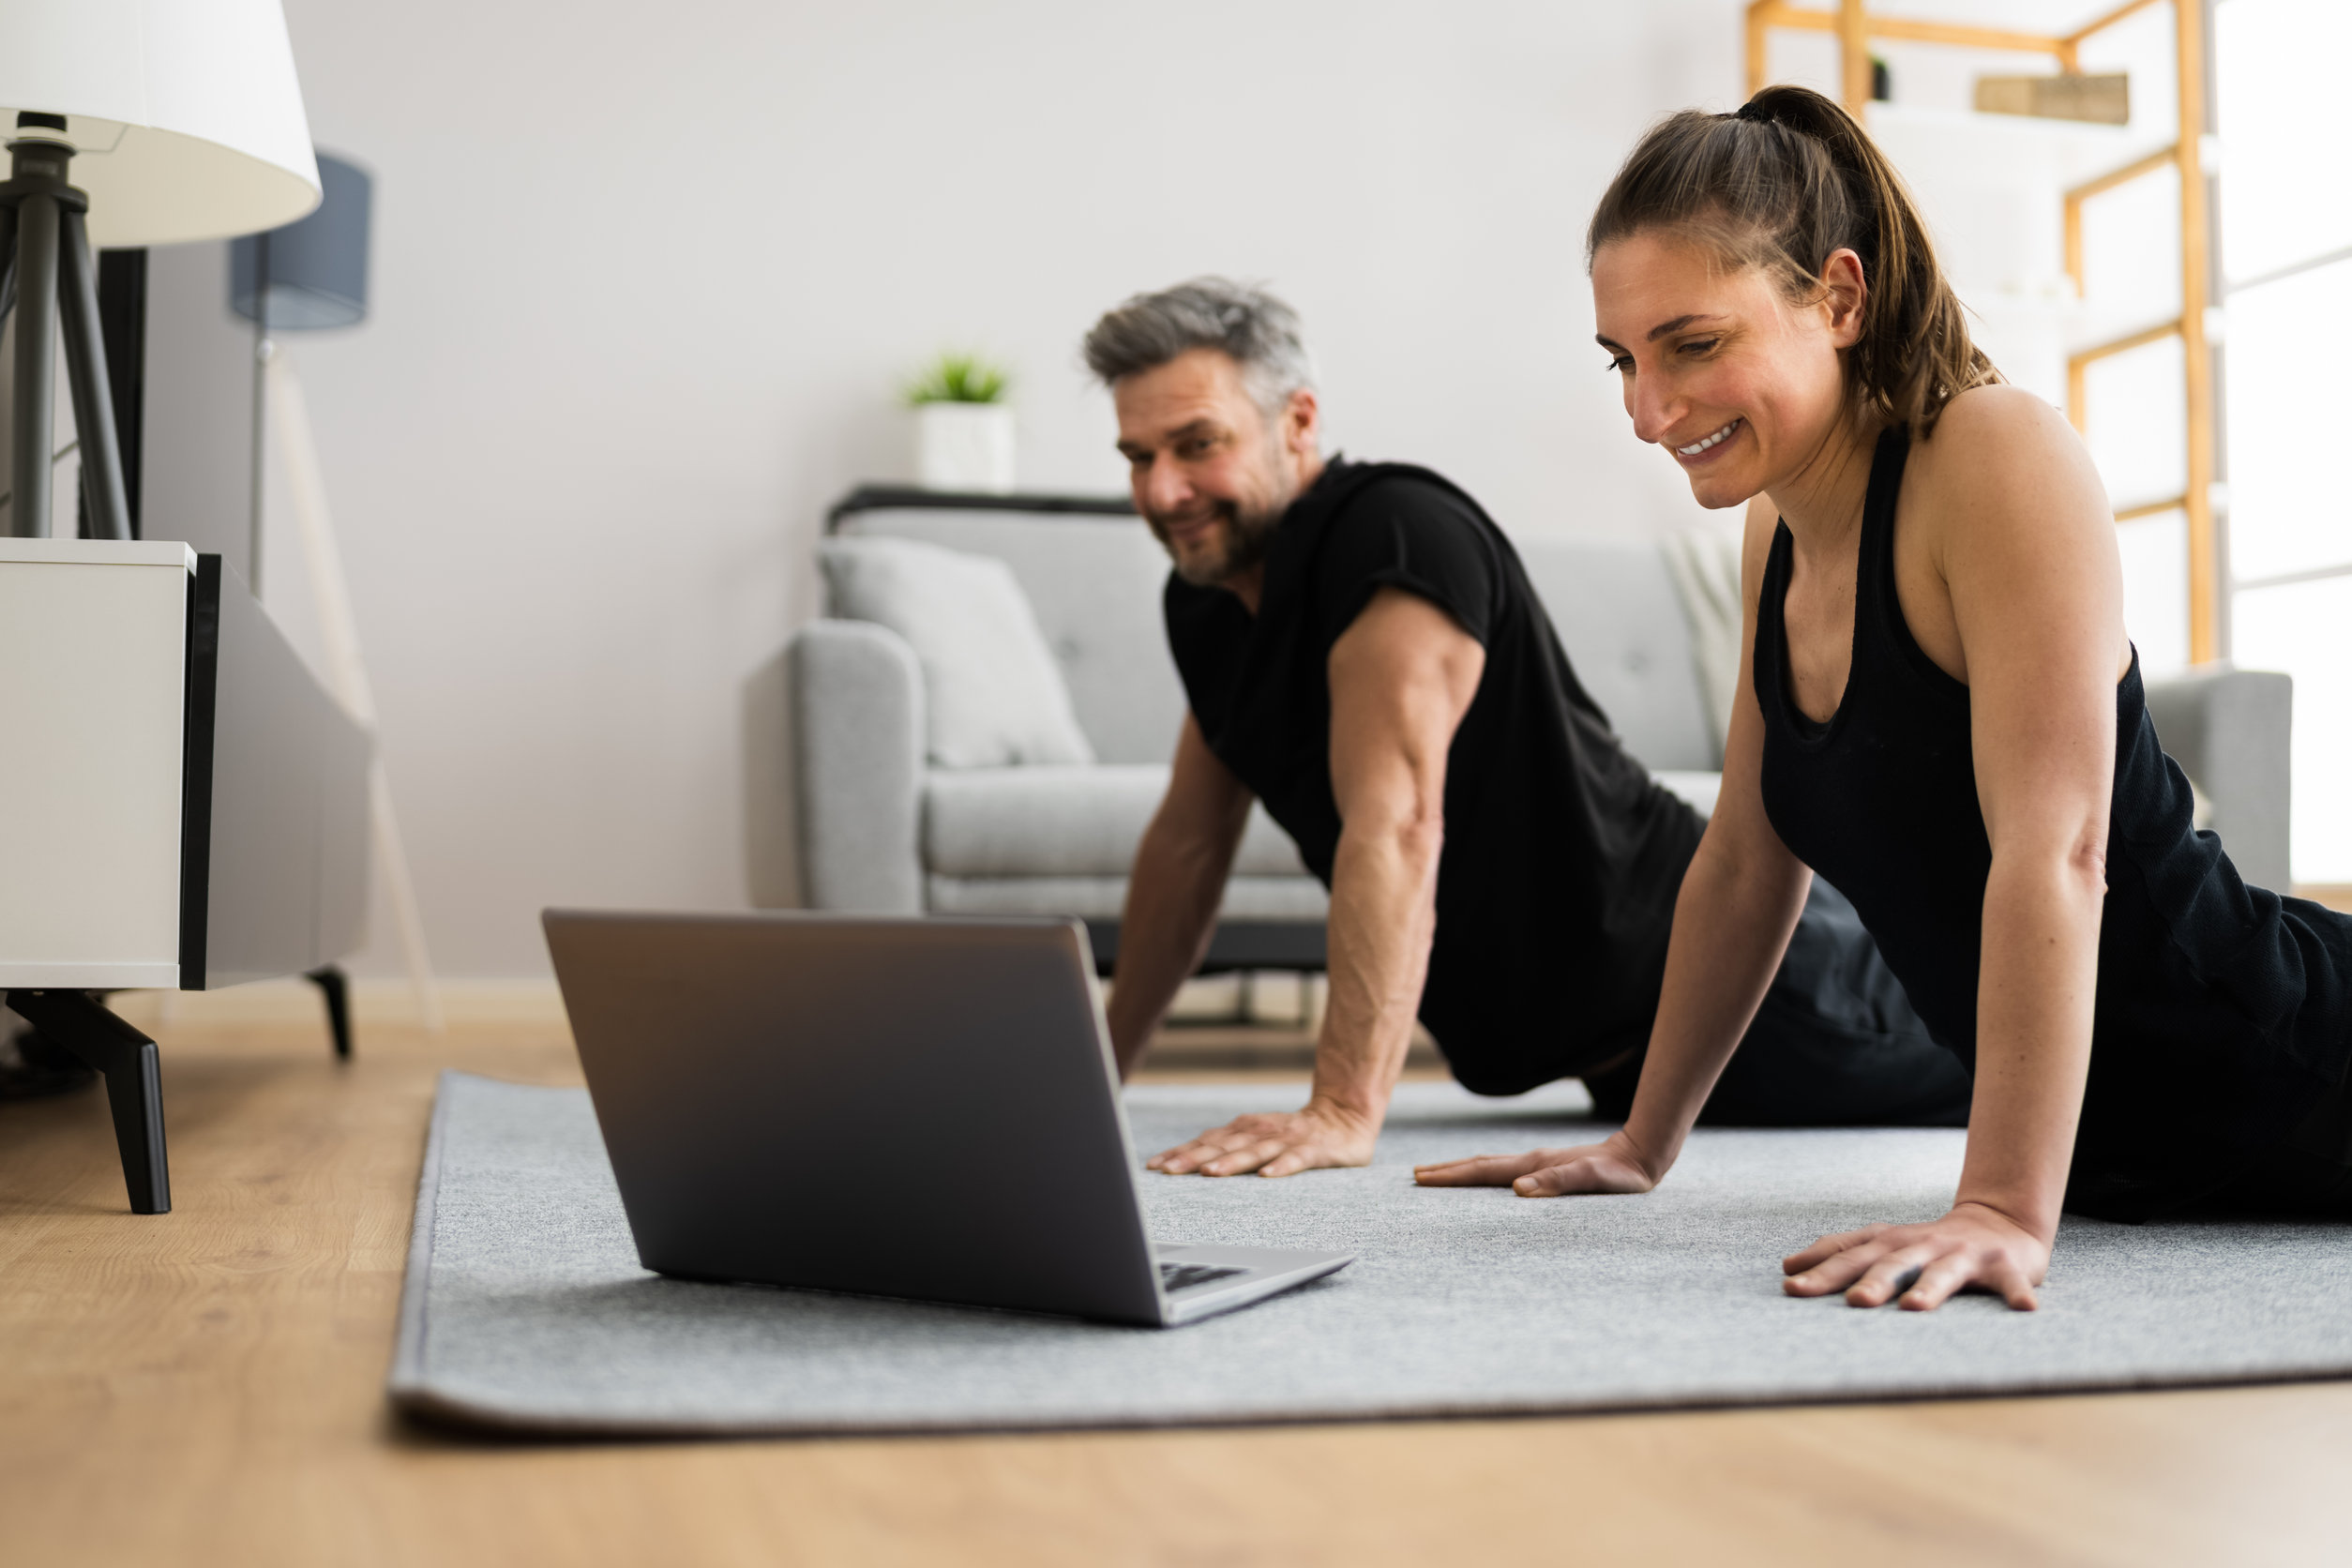 Couple Doing Online Stretching Class Workout And Fitness Exercise